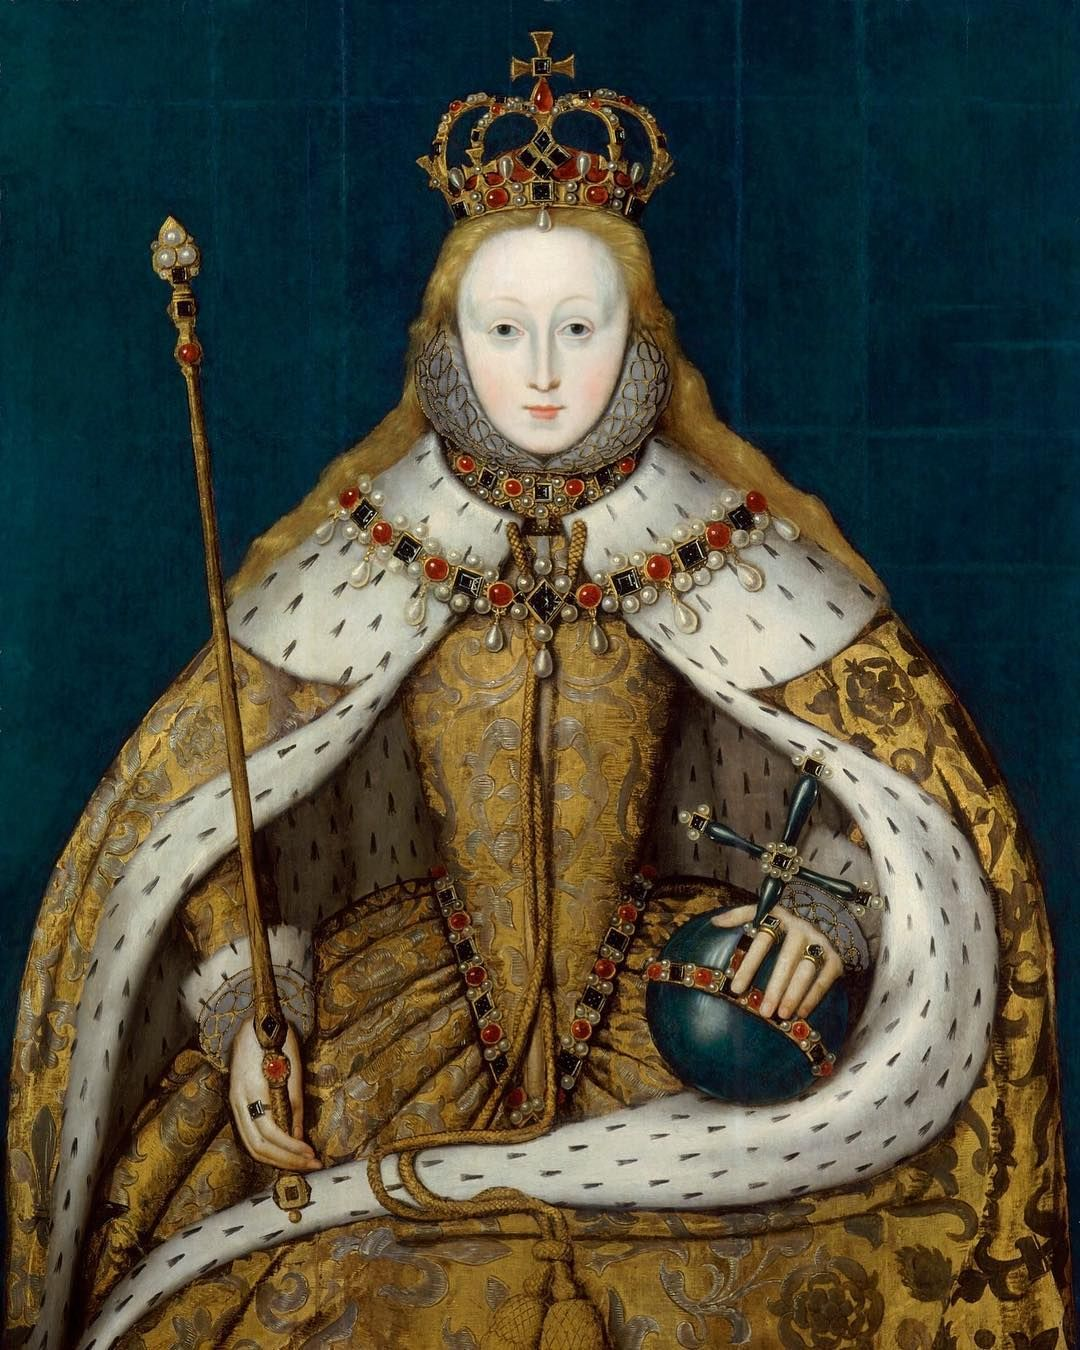 This painting is known as 'The Coronation portrait', and